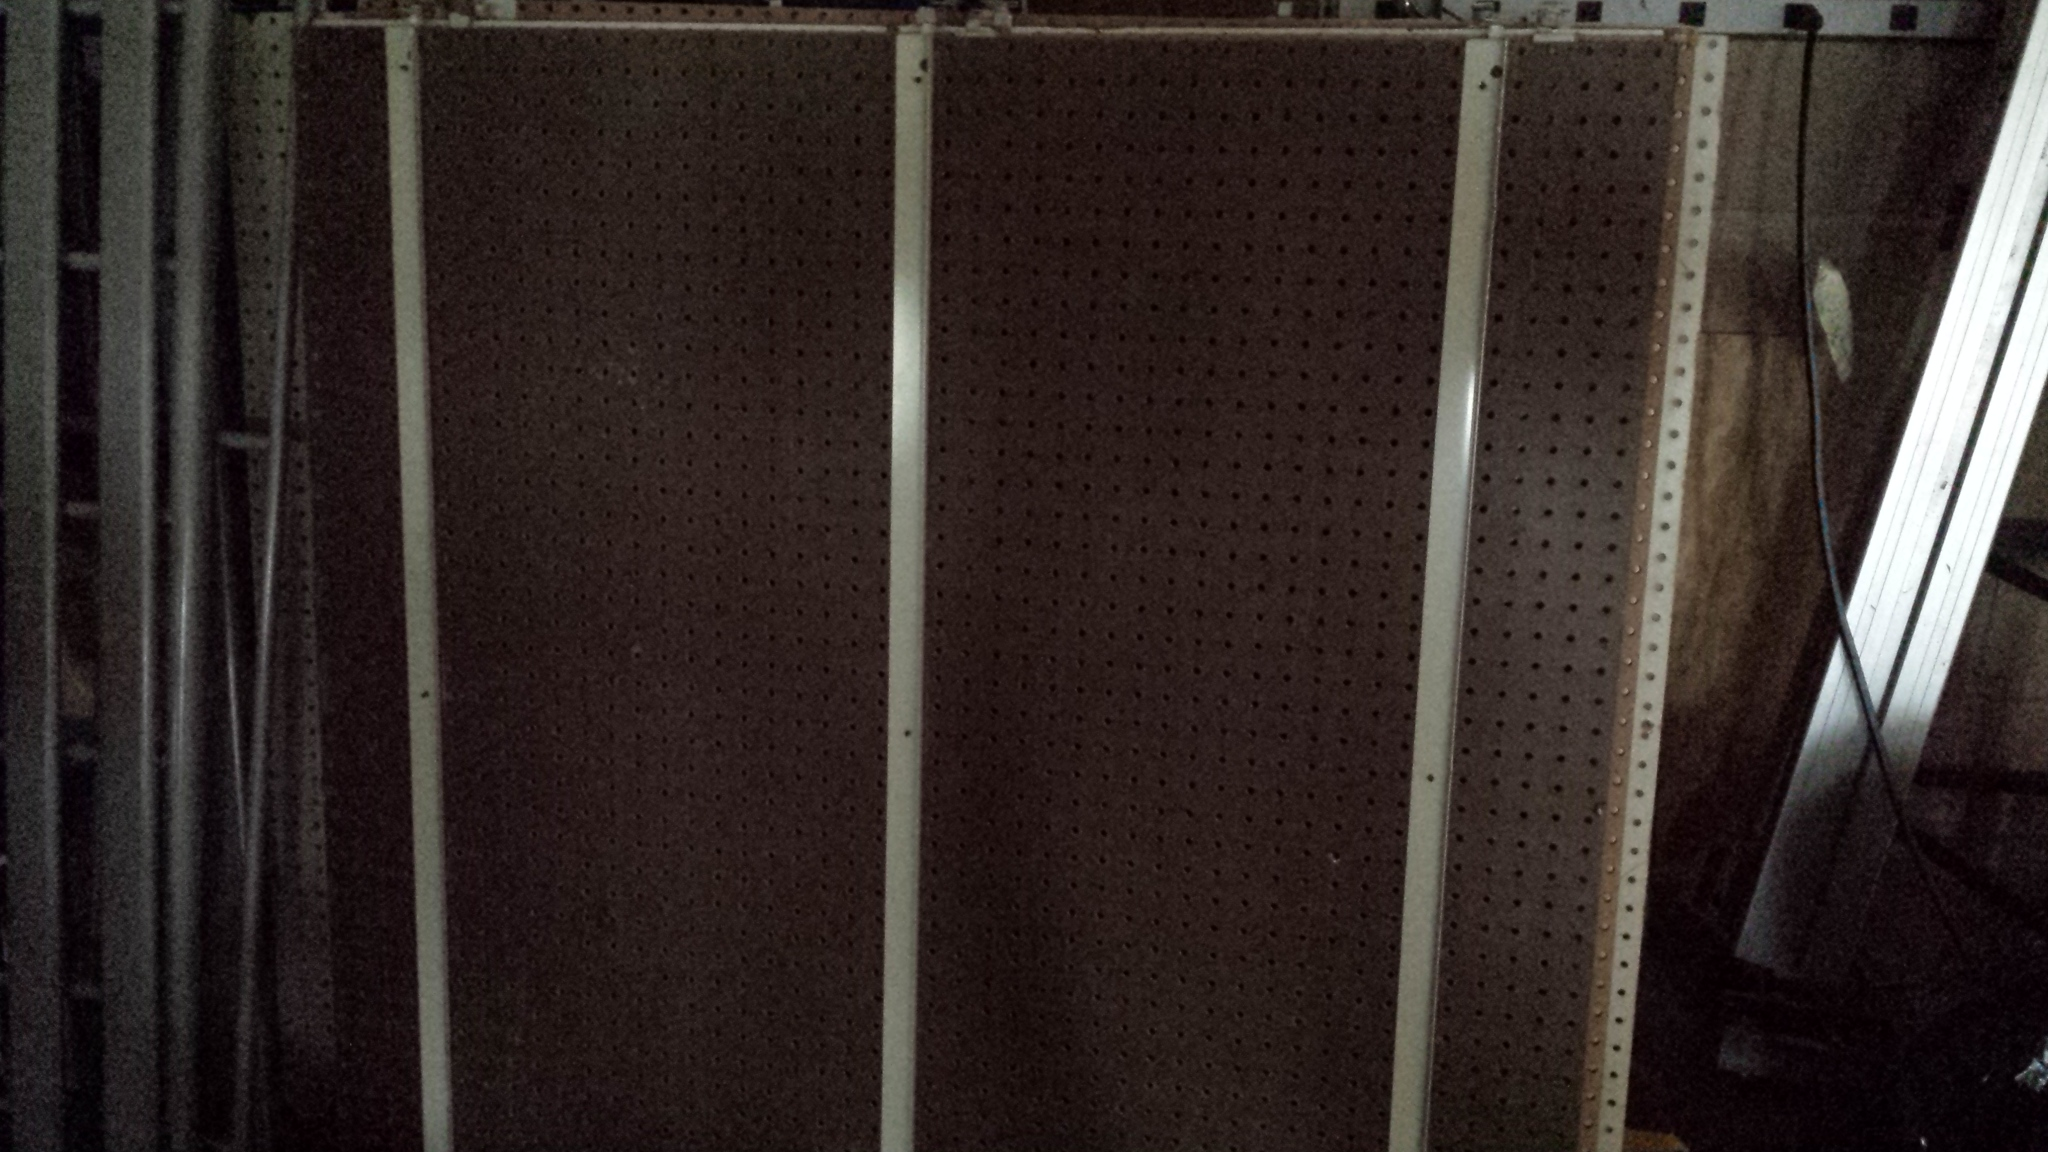 4 ft x 4 ft peg board pegboard garage storeroom warehouse storage ...